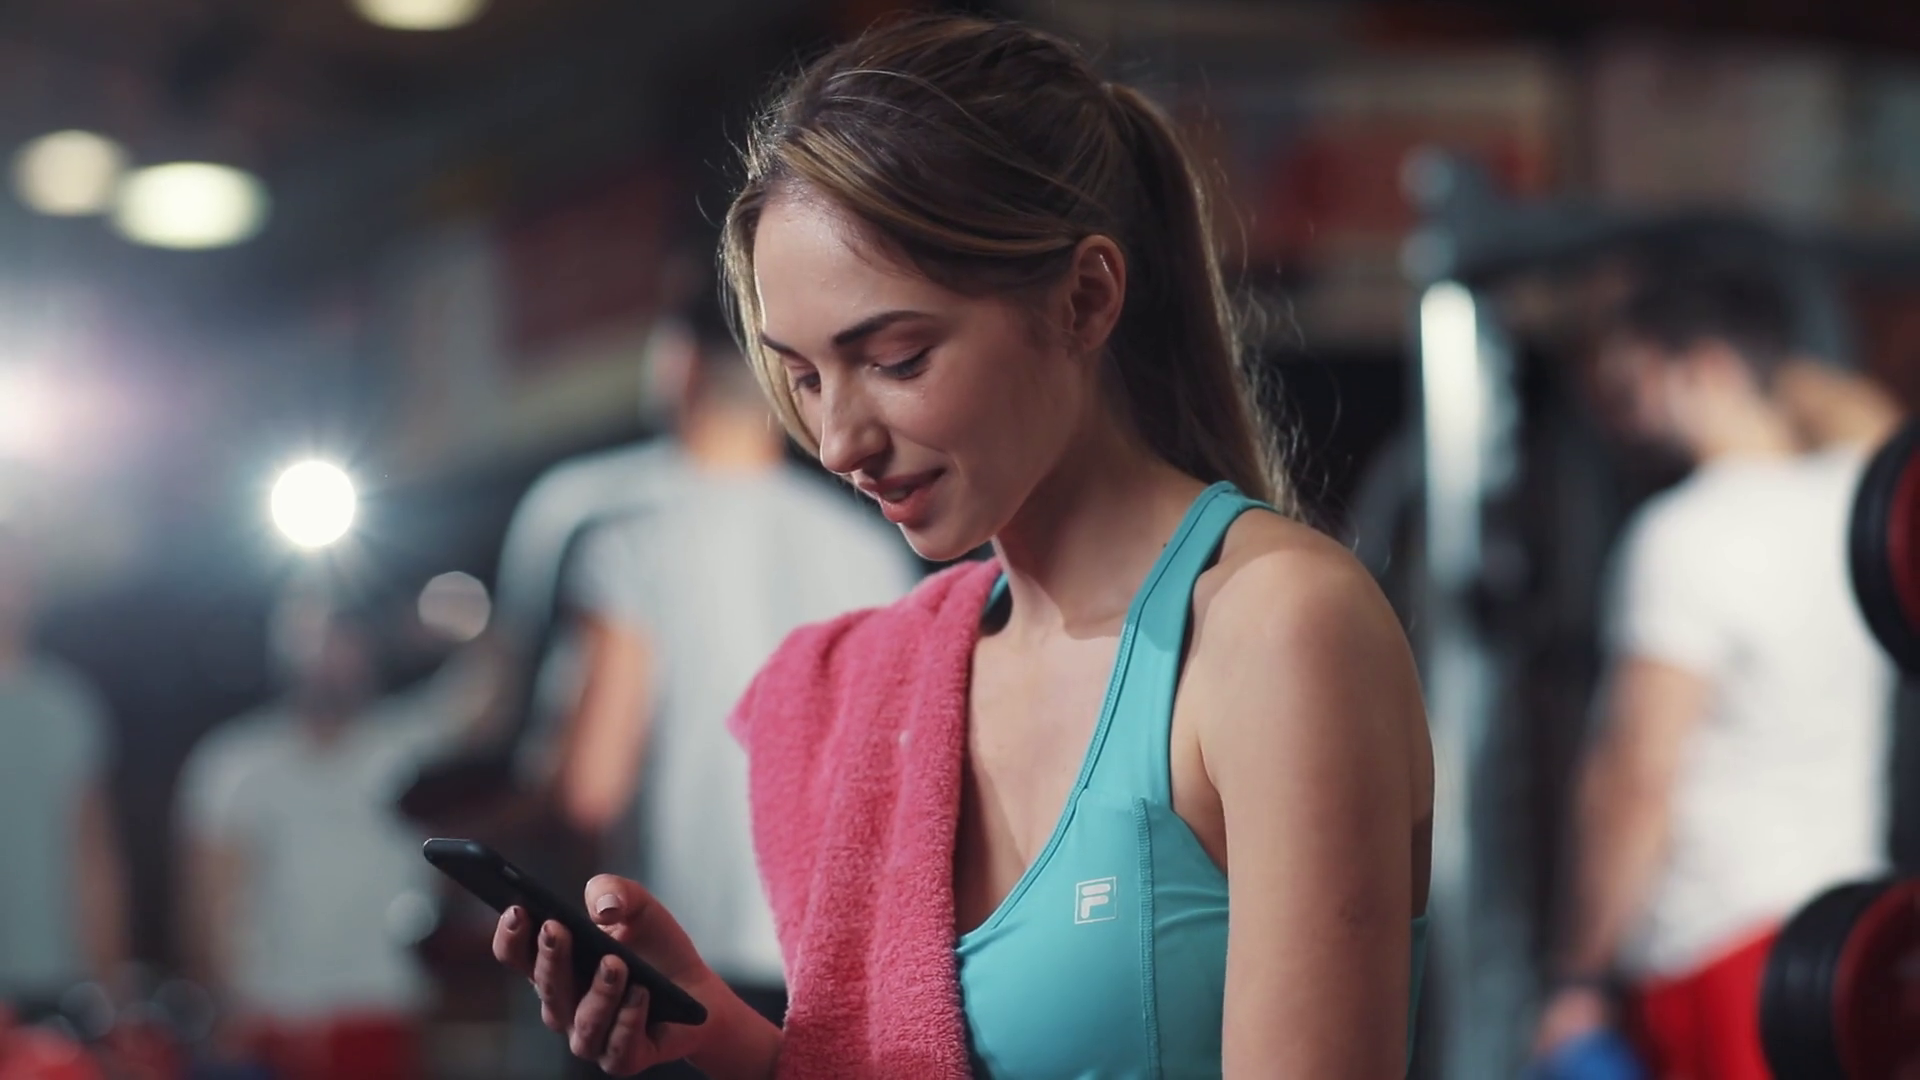 How accurate are fitness  gadgets?